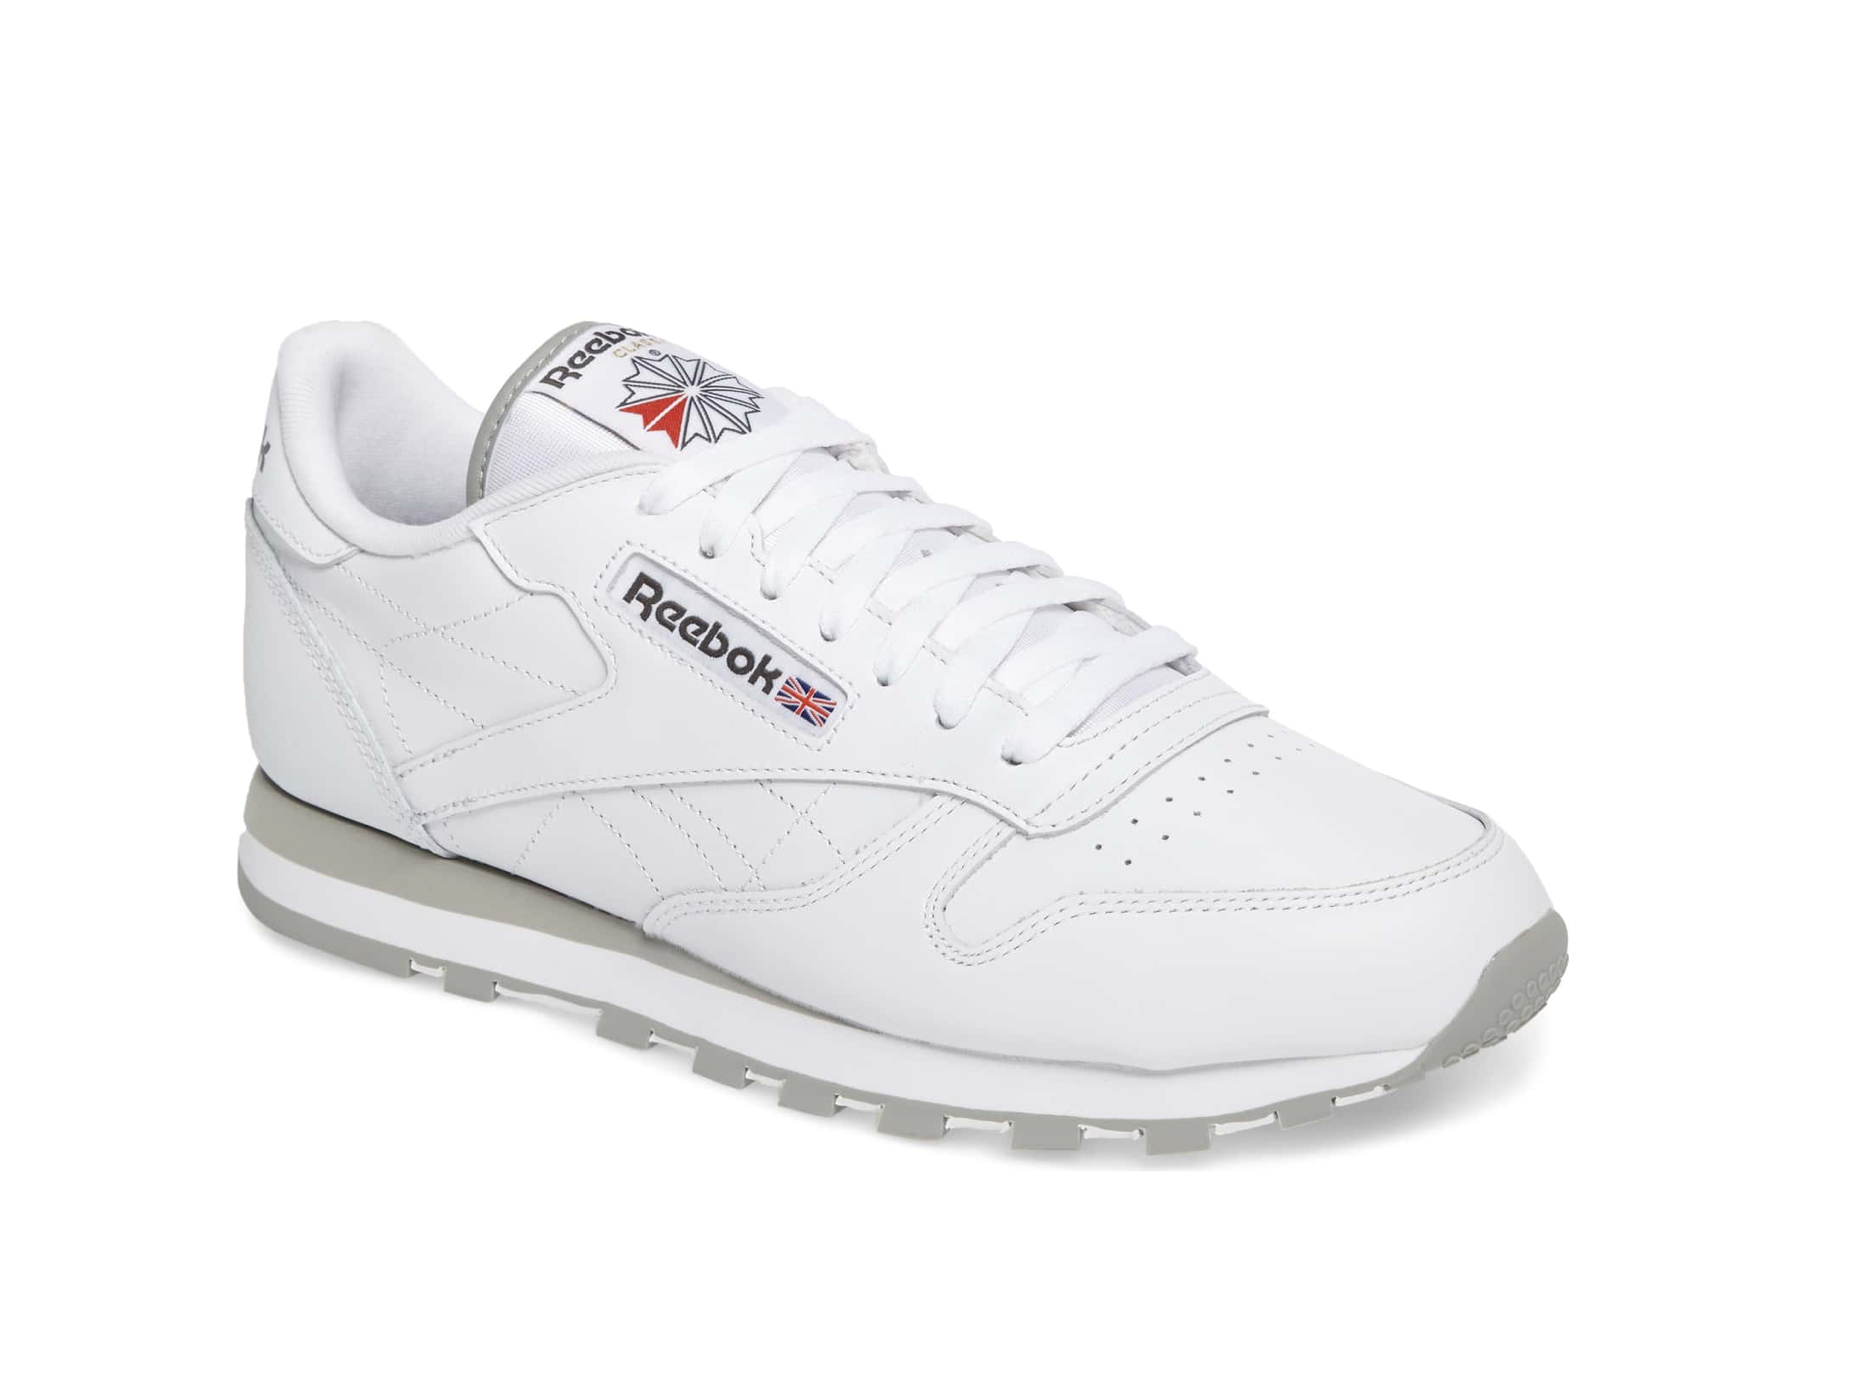 Laura Leigh of Louella Reese shares her favorite summer purchases of winter 2018 including Reebok Classic Leather Sneakers